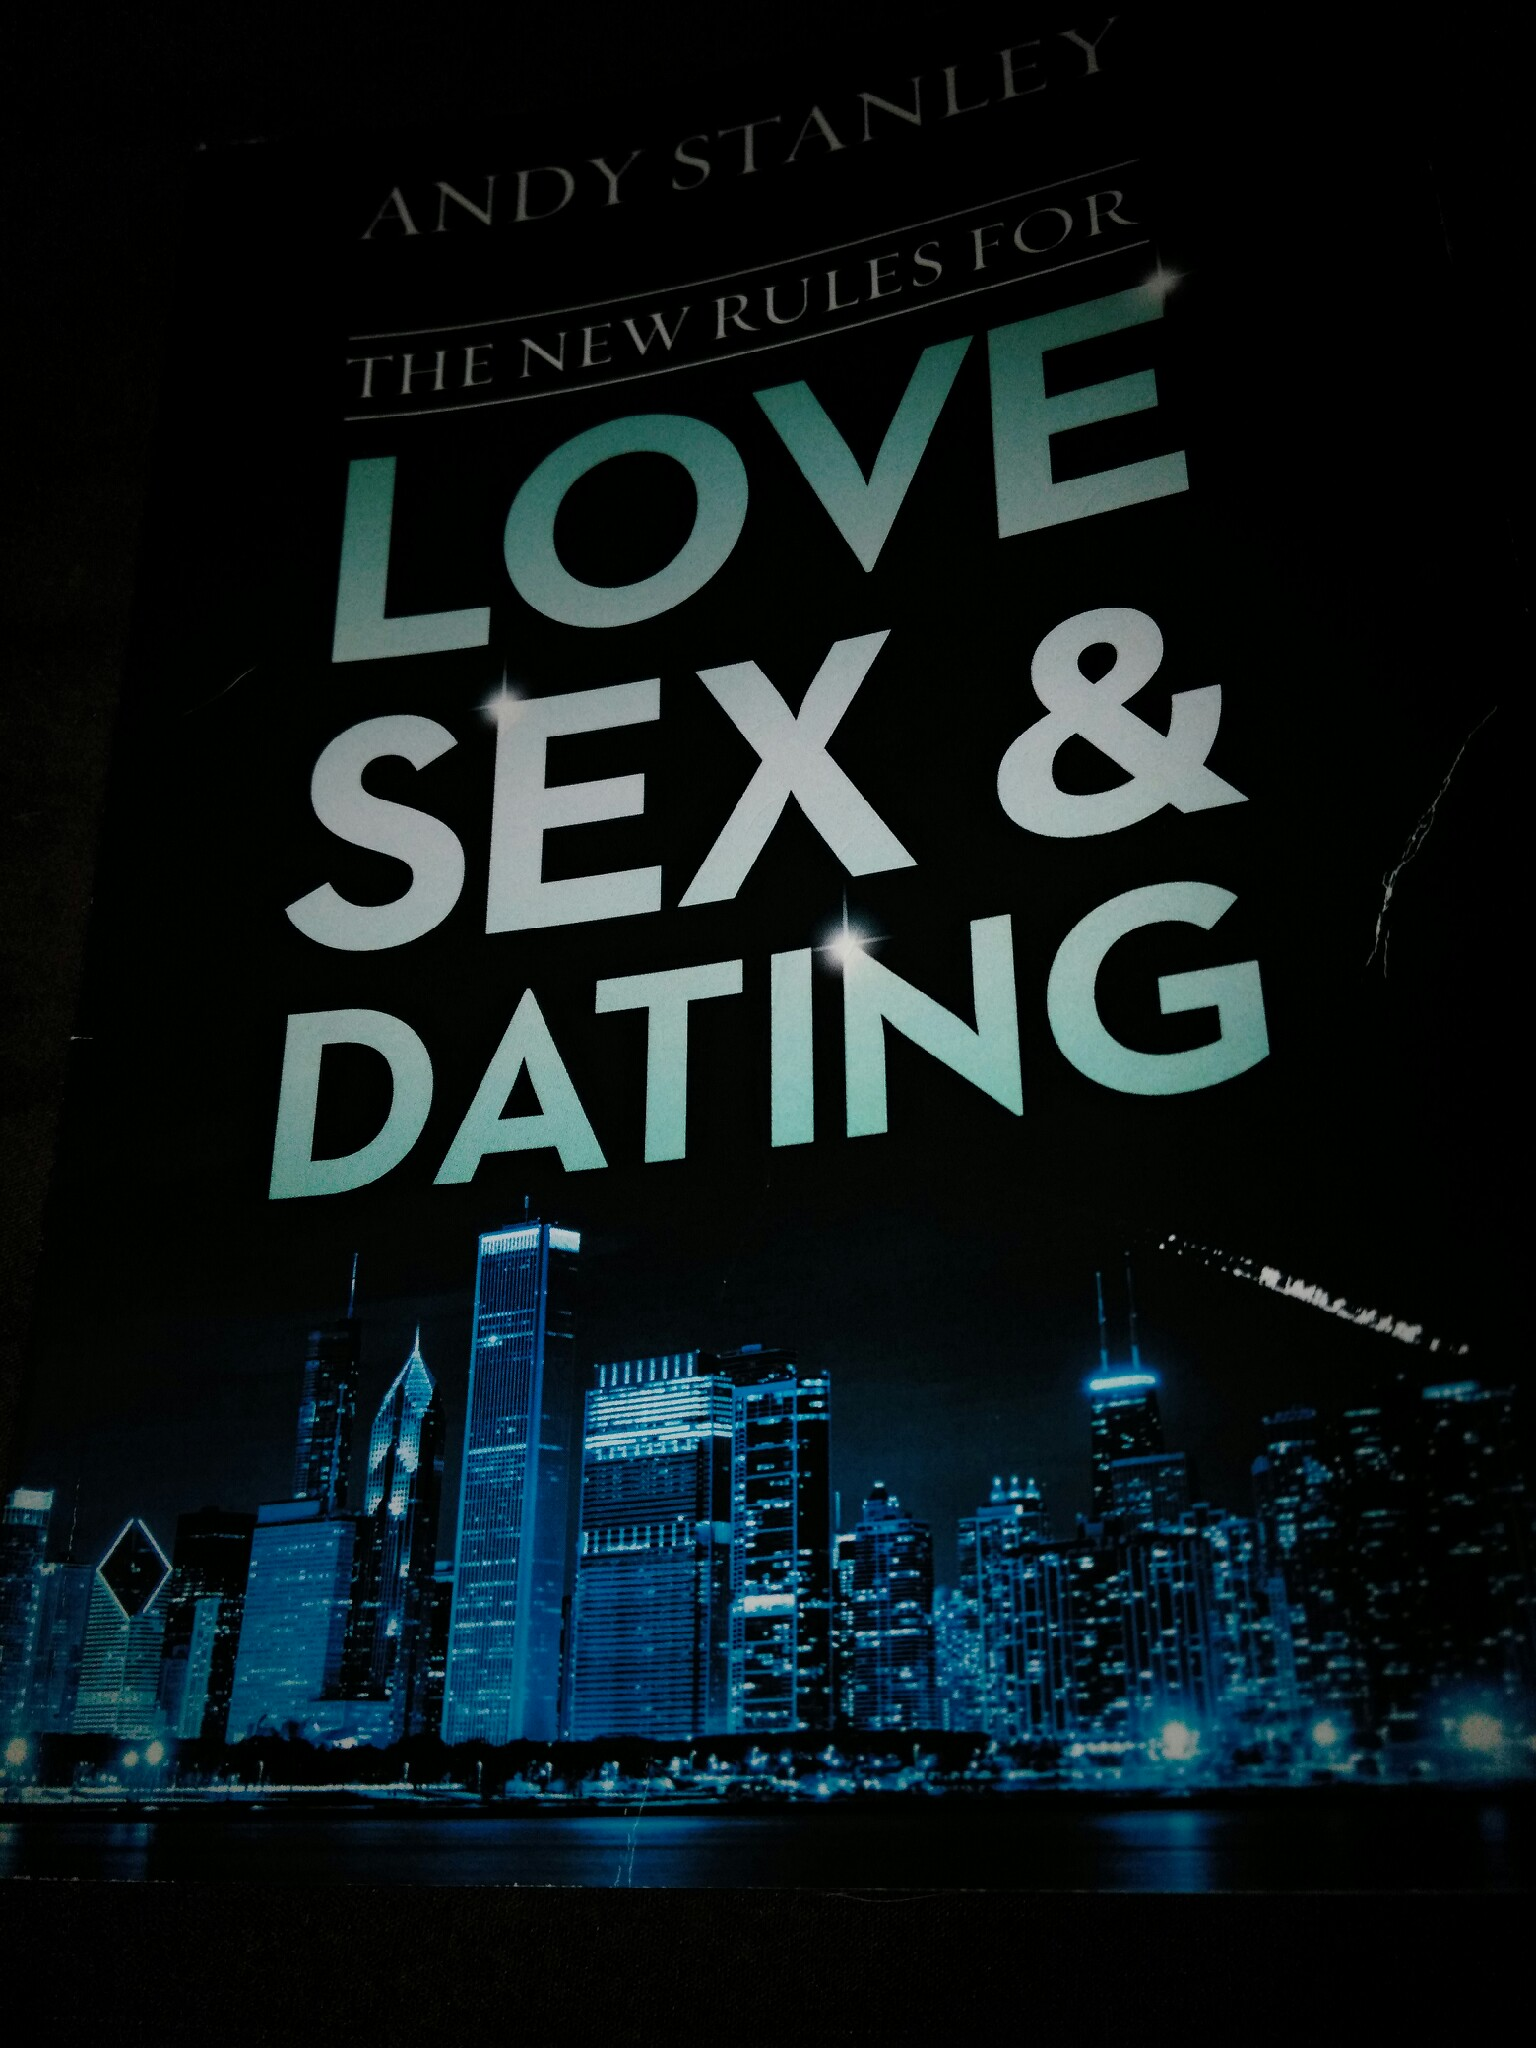 New rules for love sex and dating northpoint